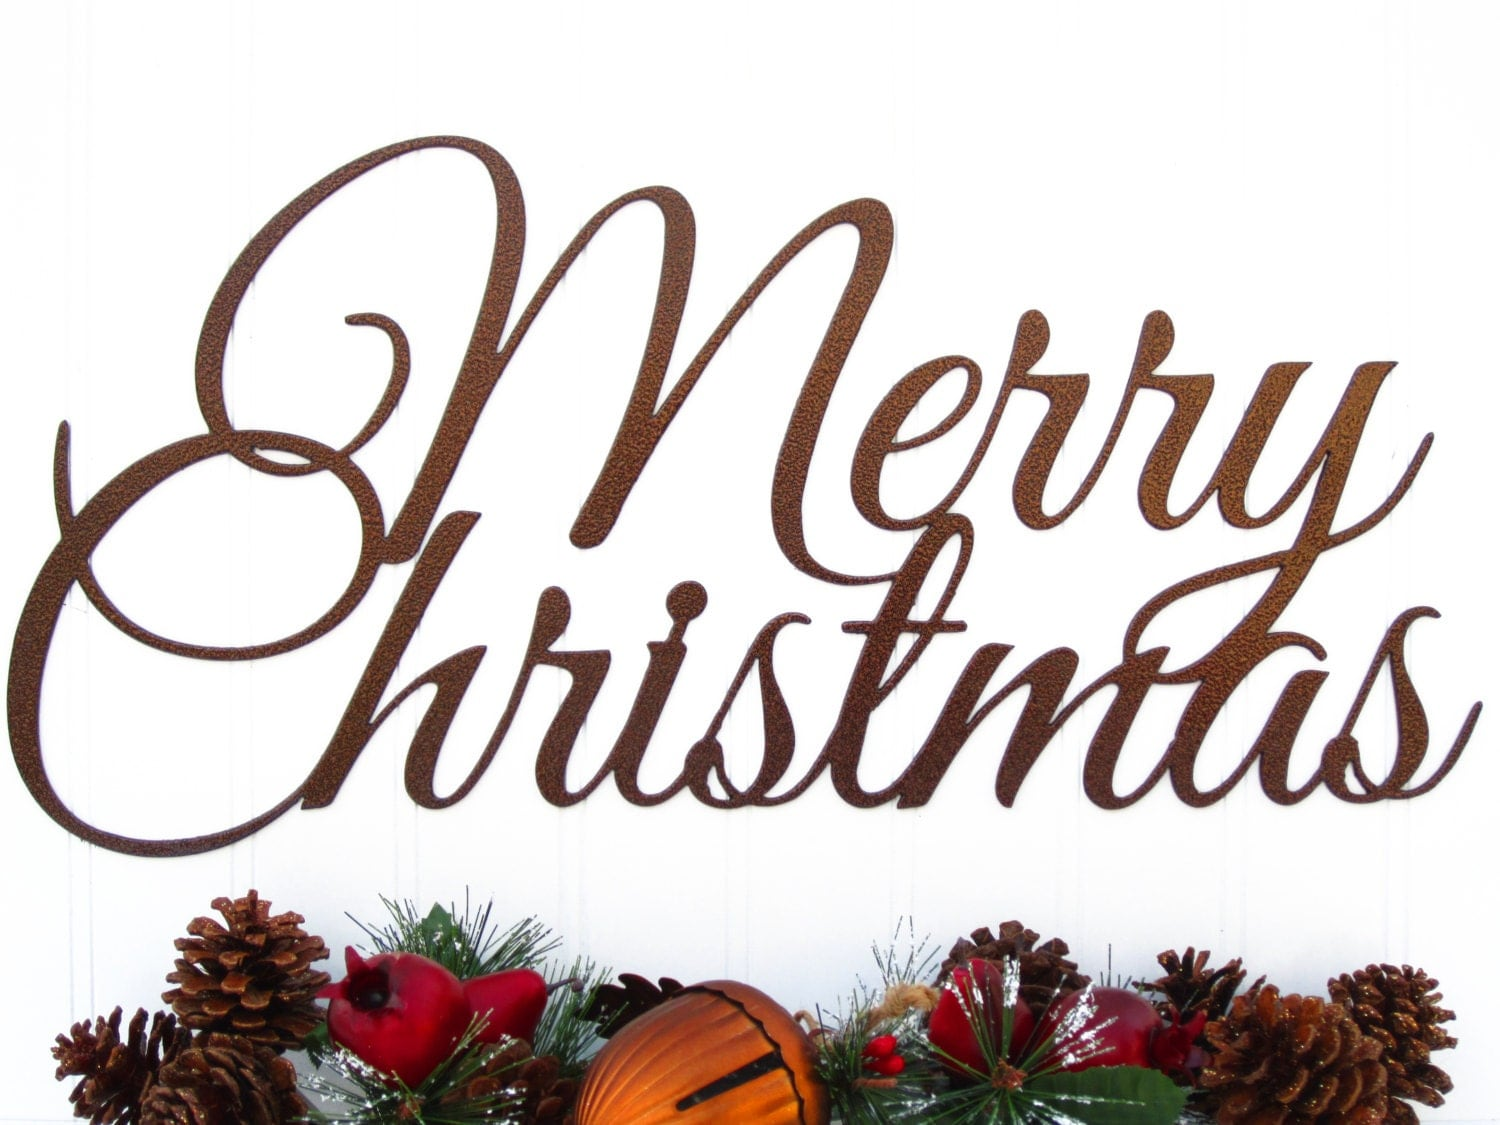 Merry christmas script metal sign copper